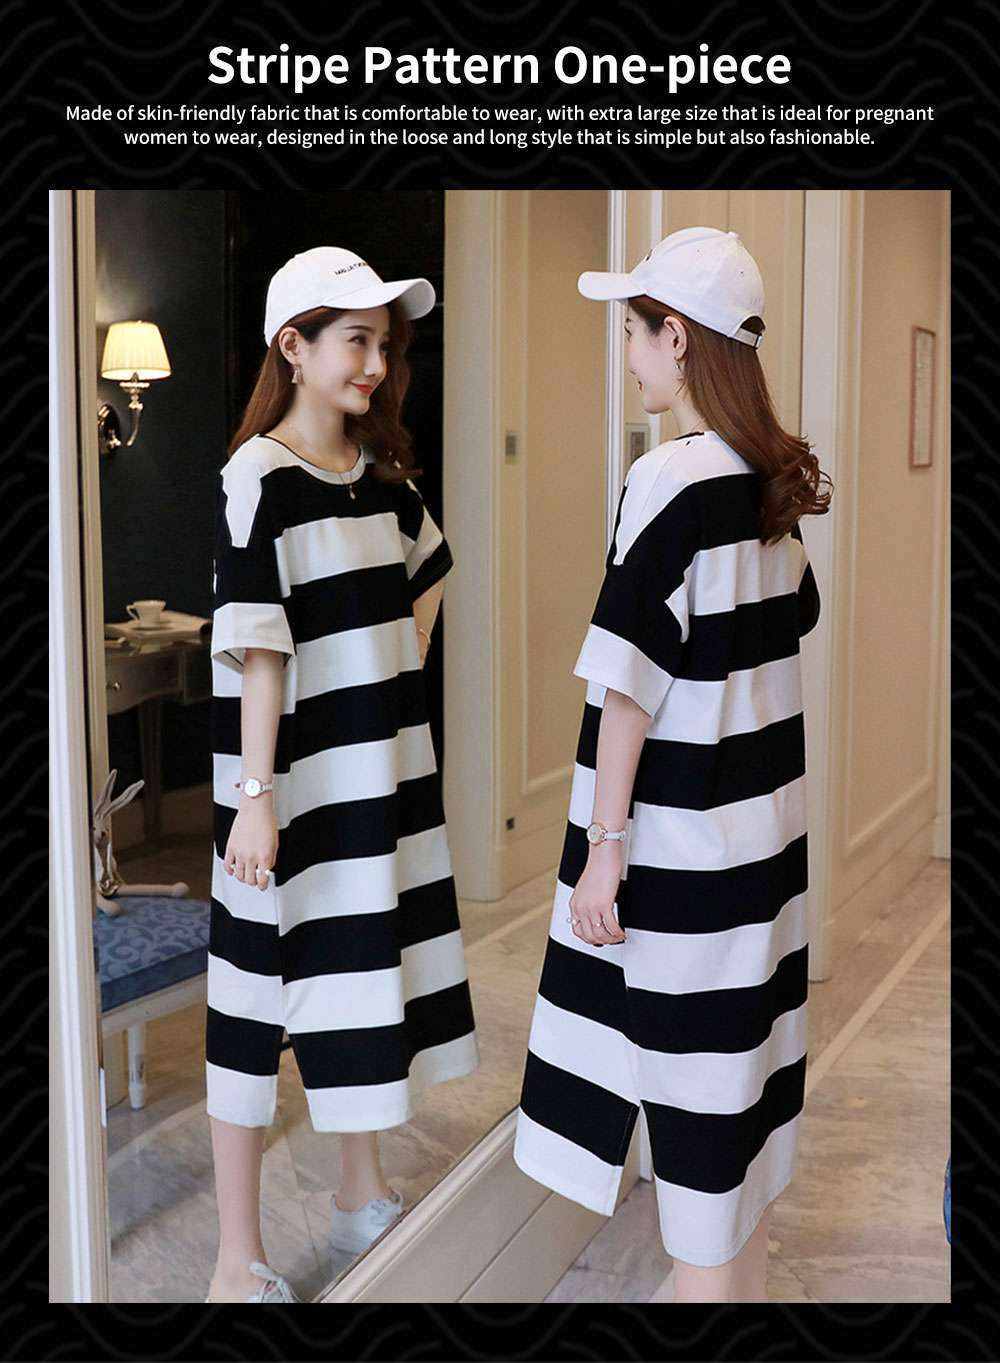 Stripe Pattern One-piece, Pregnancy Extra Large Wear, Over-size Loose Long Dress for Spring & Summer Maternity Dress 0